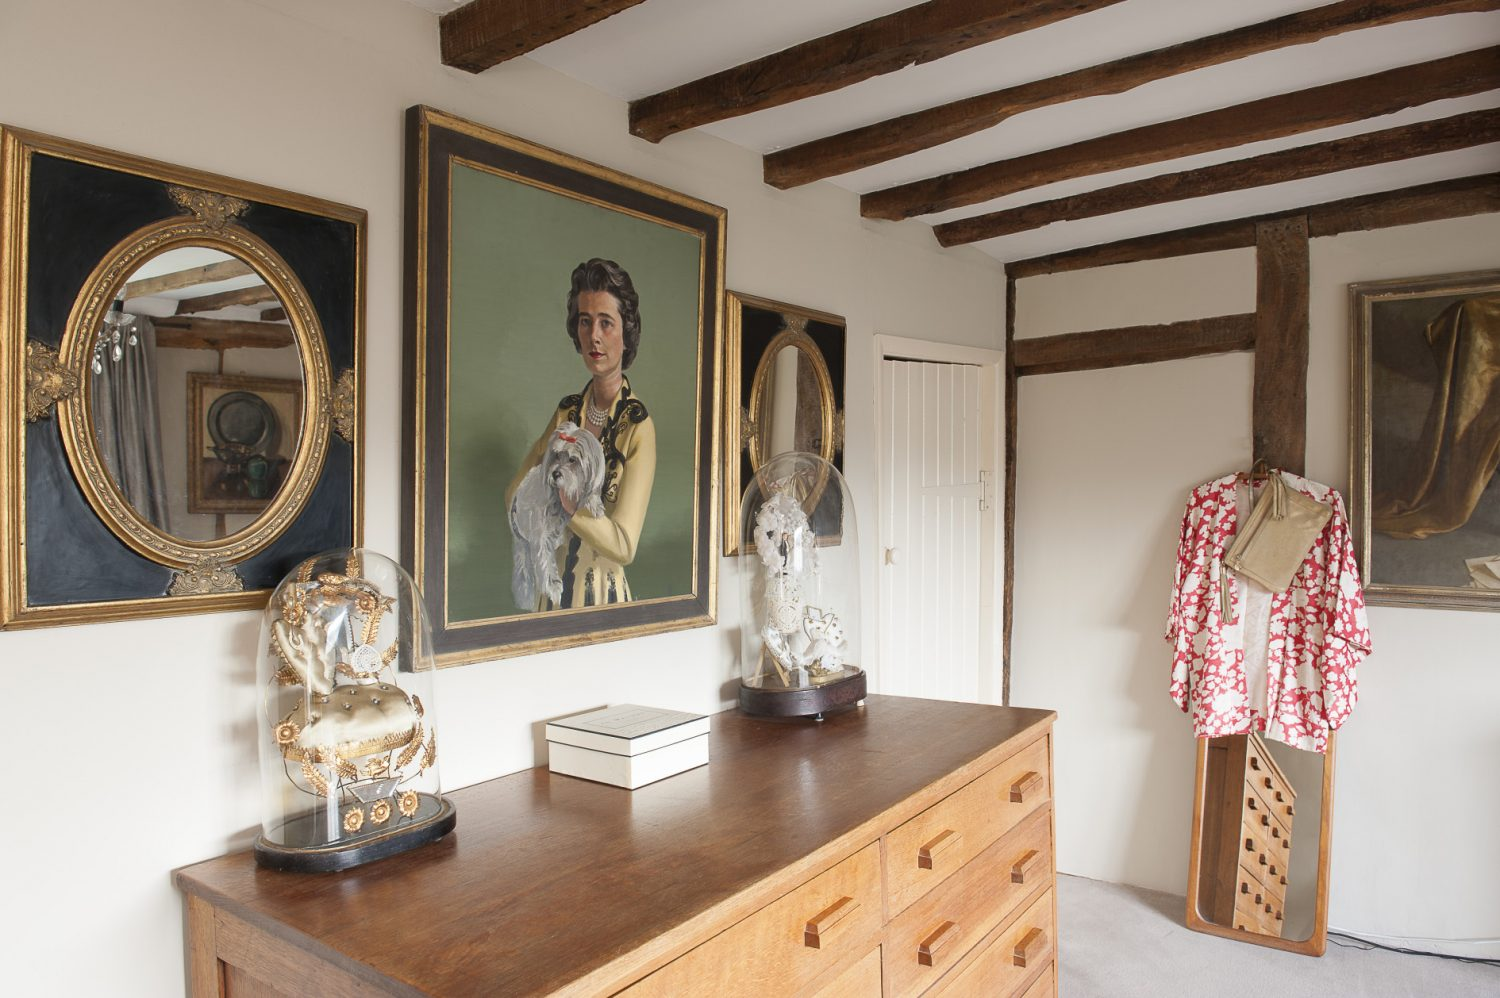 Opposite the master bedroom window is another 1950s portrait from a Westerham antiques shop, flanked by two oval gilt and black mirrors; beneath, atop a 1930s oak chest of drawers, are two more favourite domes